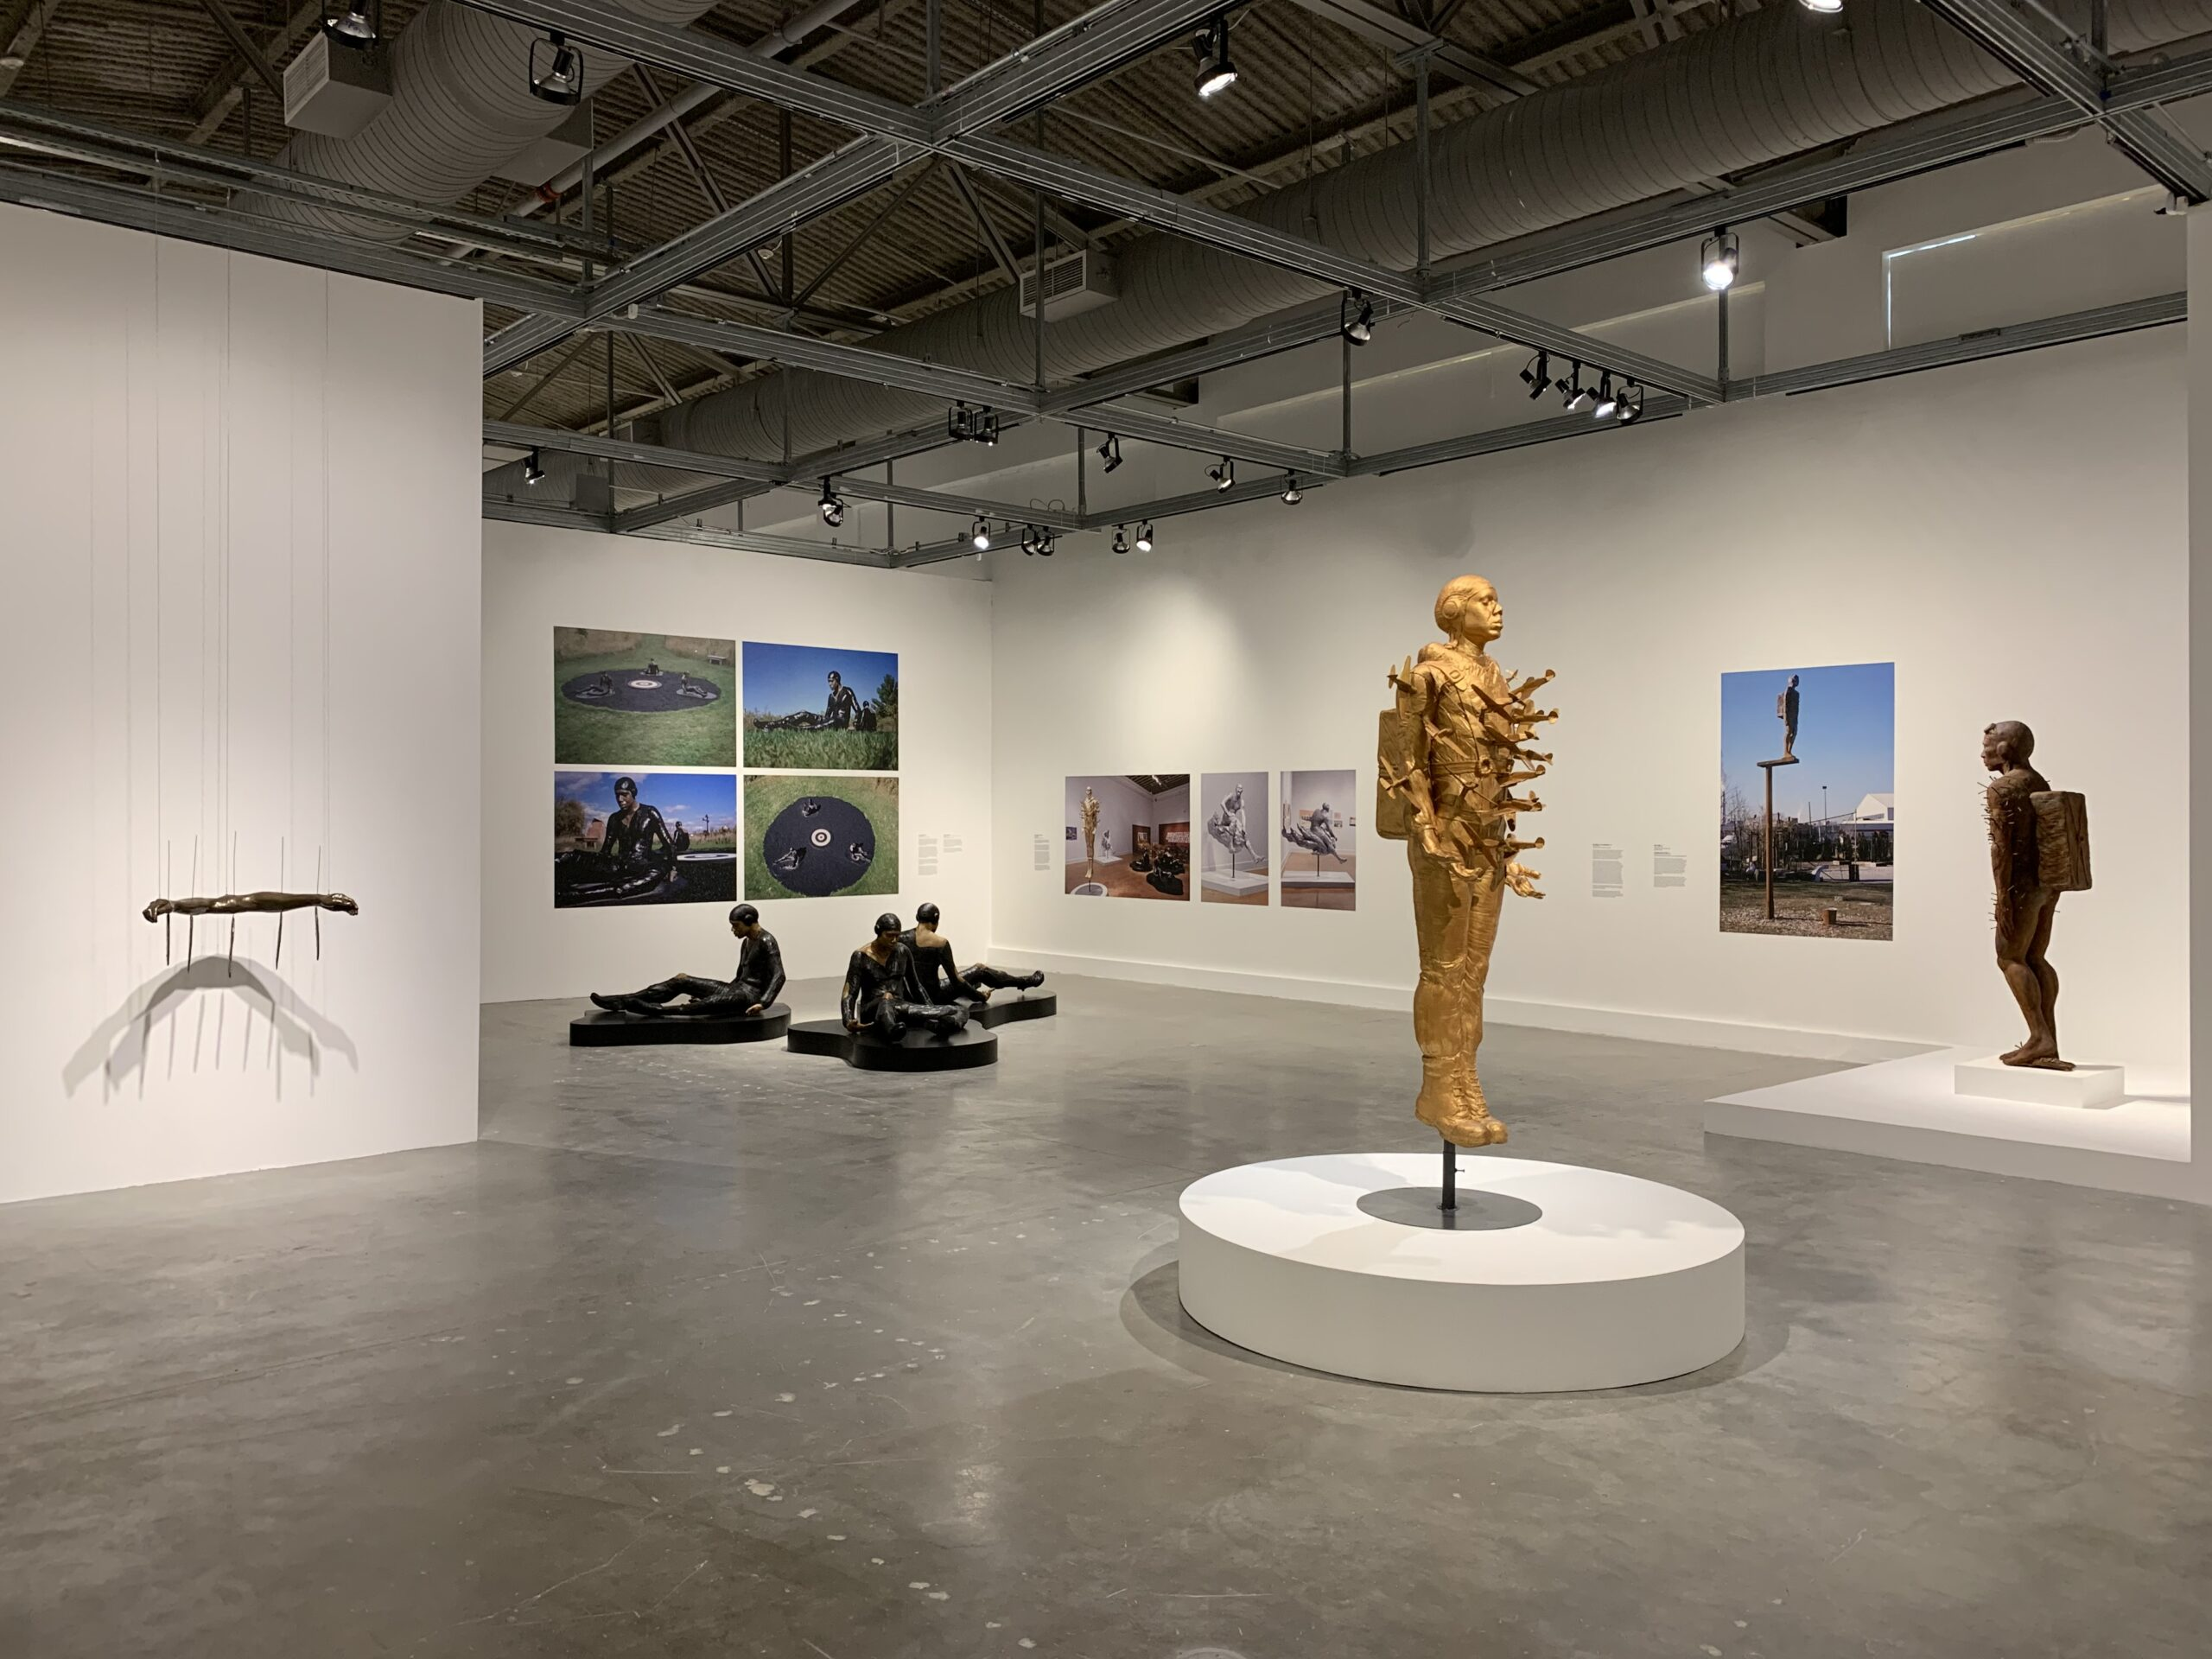 Virtual curator tour of michael richards: are you down? with melissa levin & alex fialho